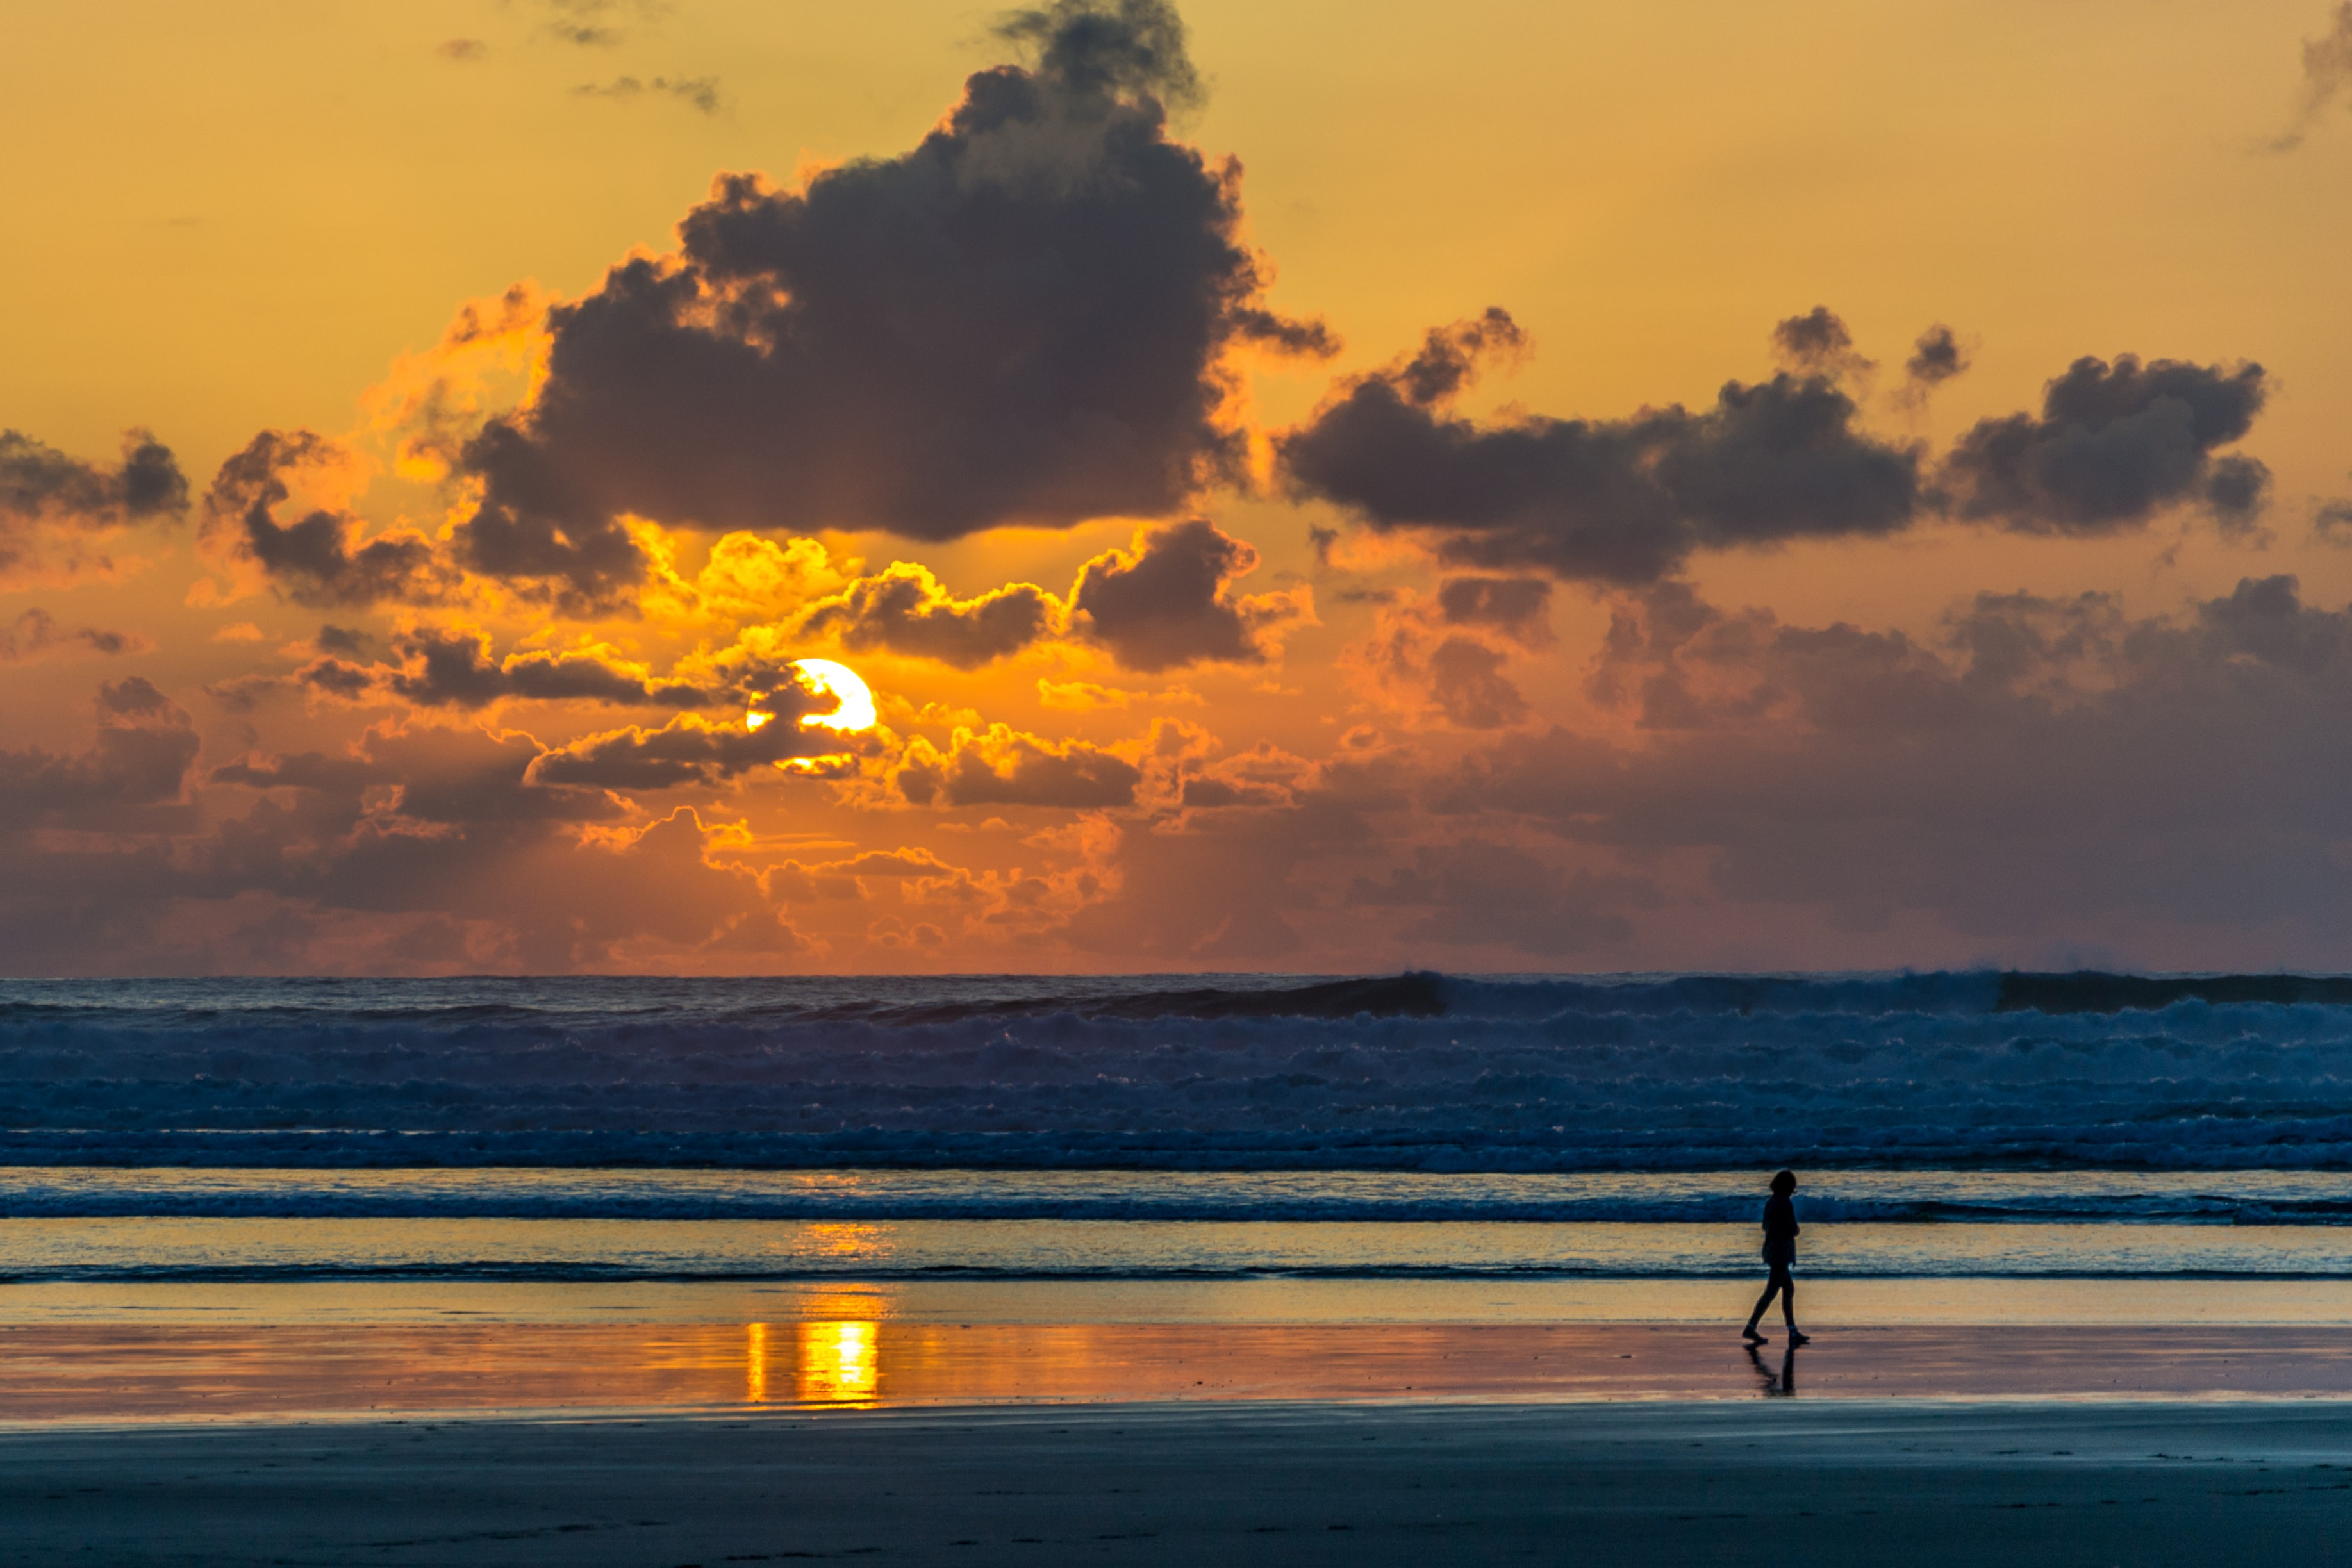 person on beach shore during sunset